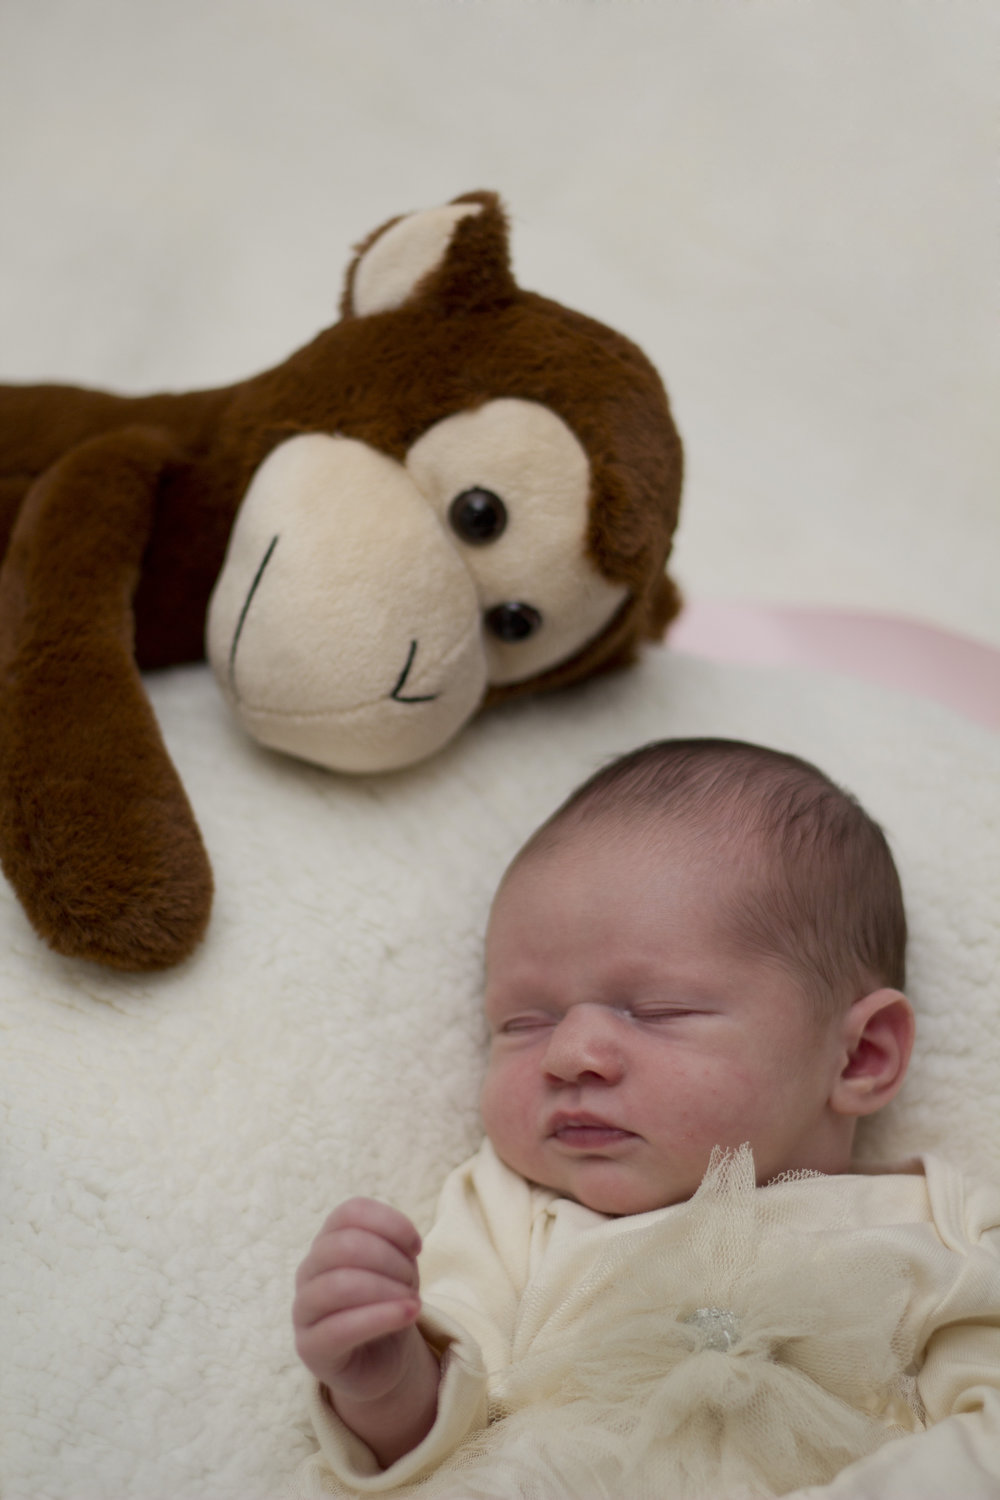 Sweet newborn baby girl session in Southern New Jersey. Look at how the little monkey is watching over her!